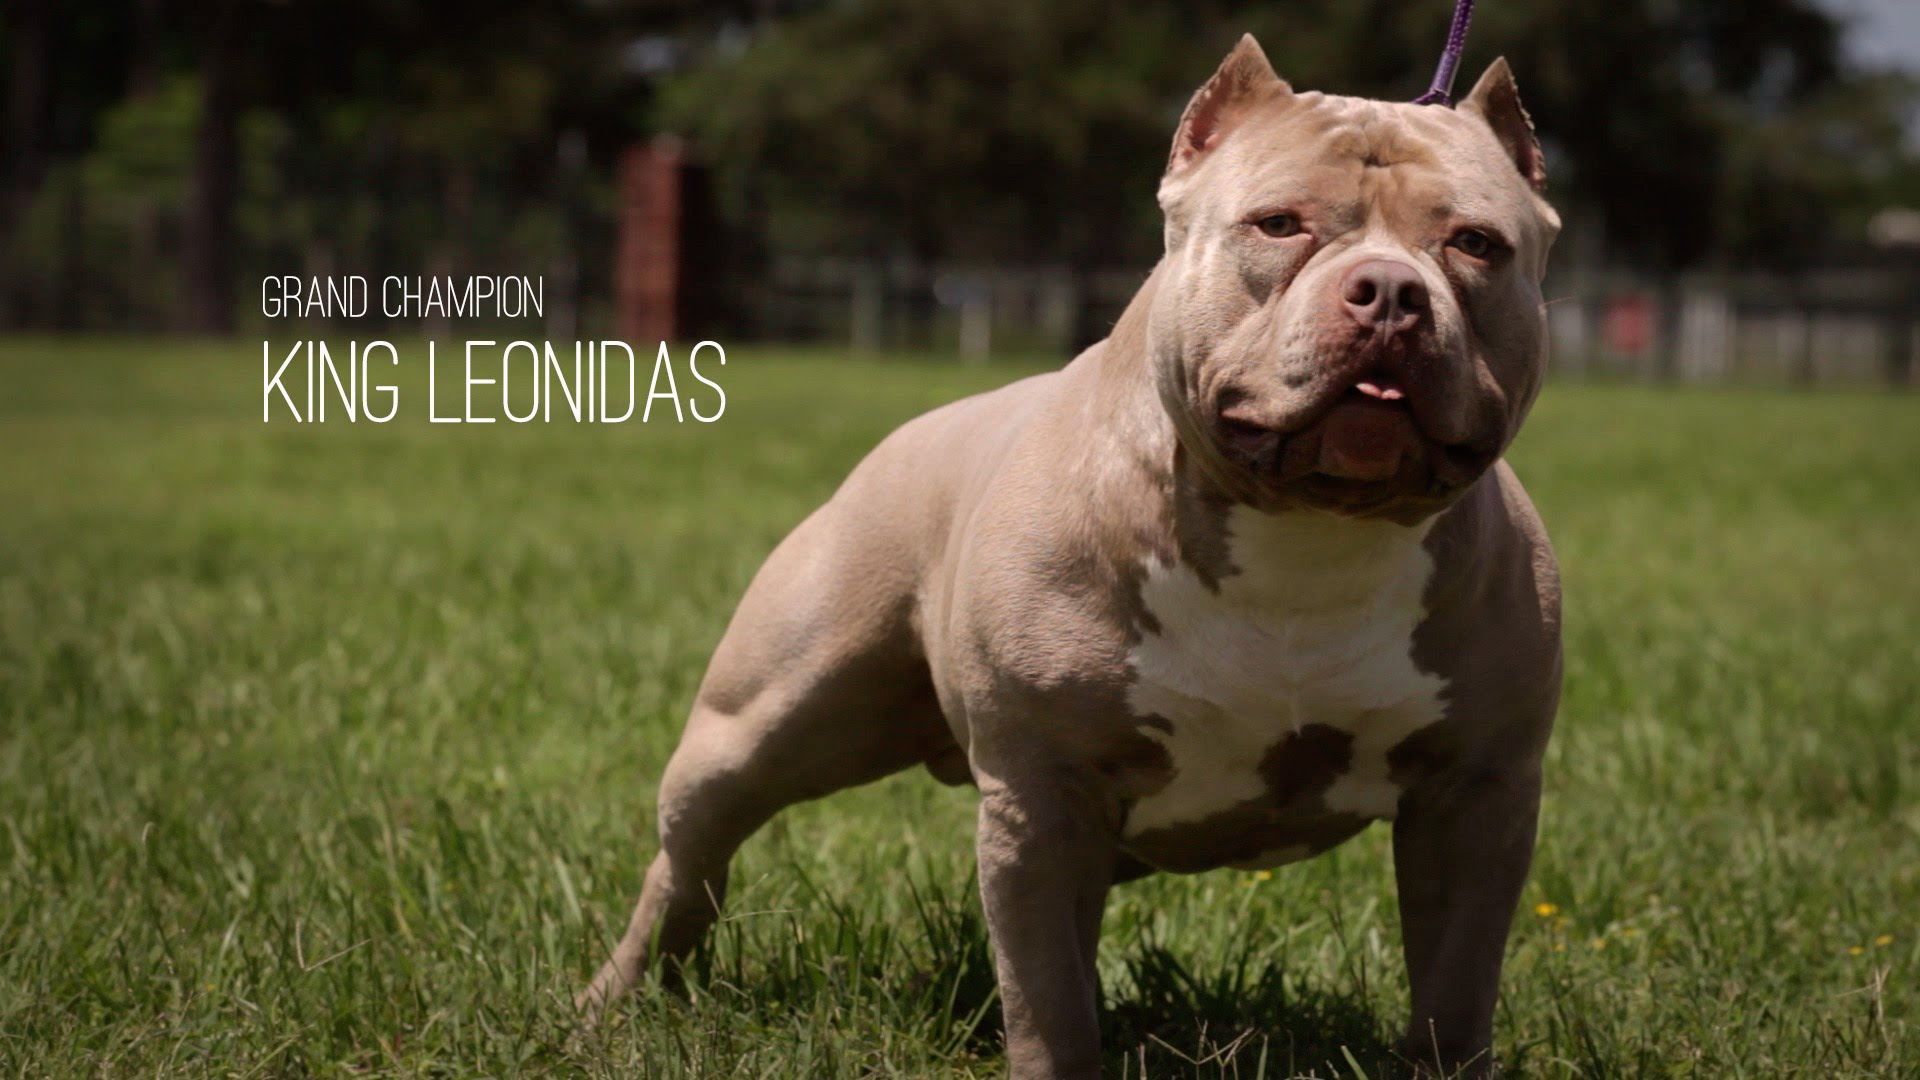 American Bully Dog of the Day: King Leonidas the Grand Champion Bully